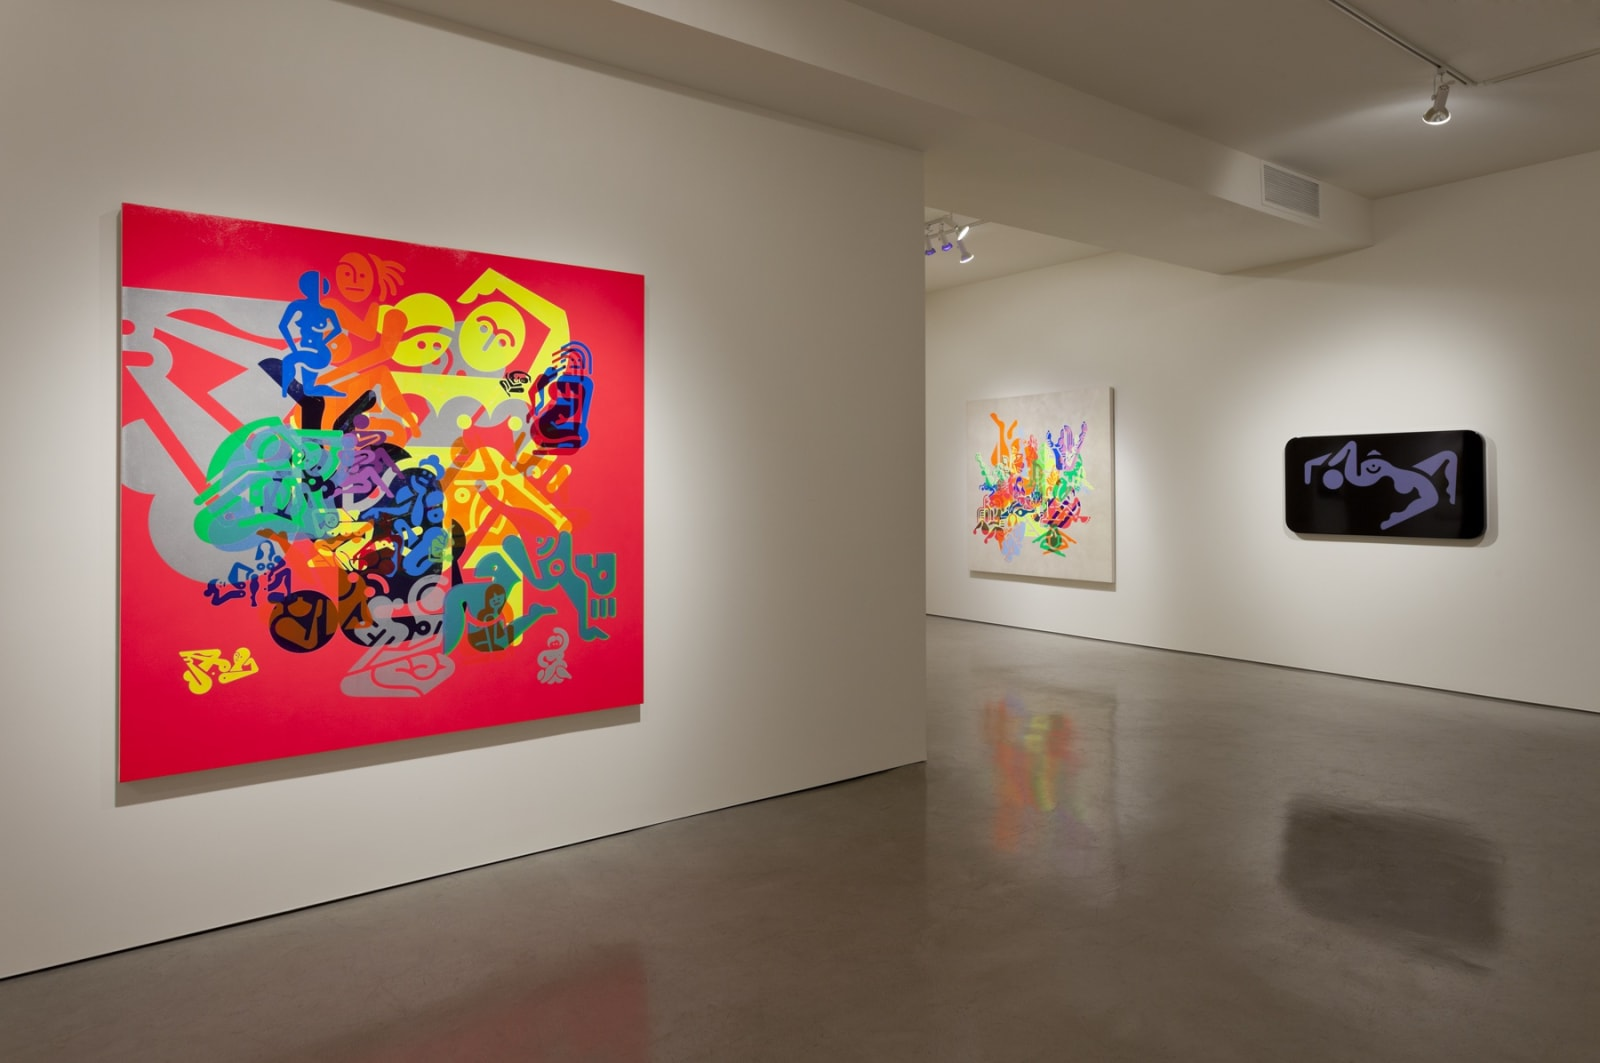 RYAN McGINNESS | Women: New (Re)Presentations